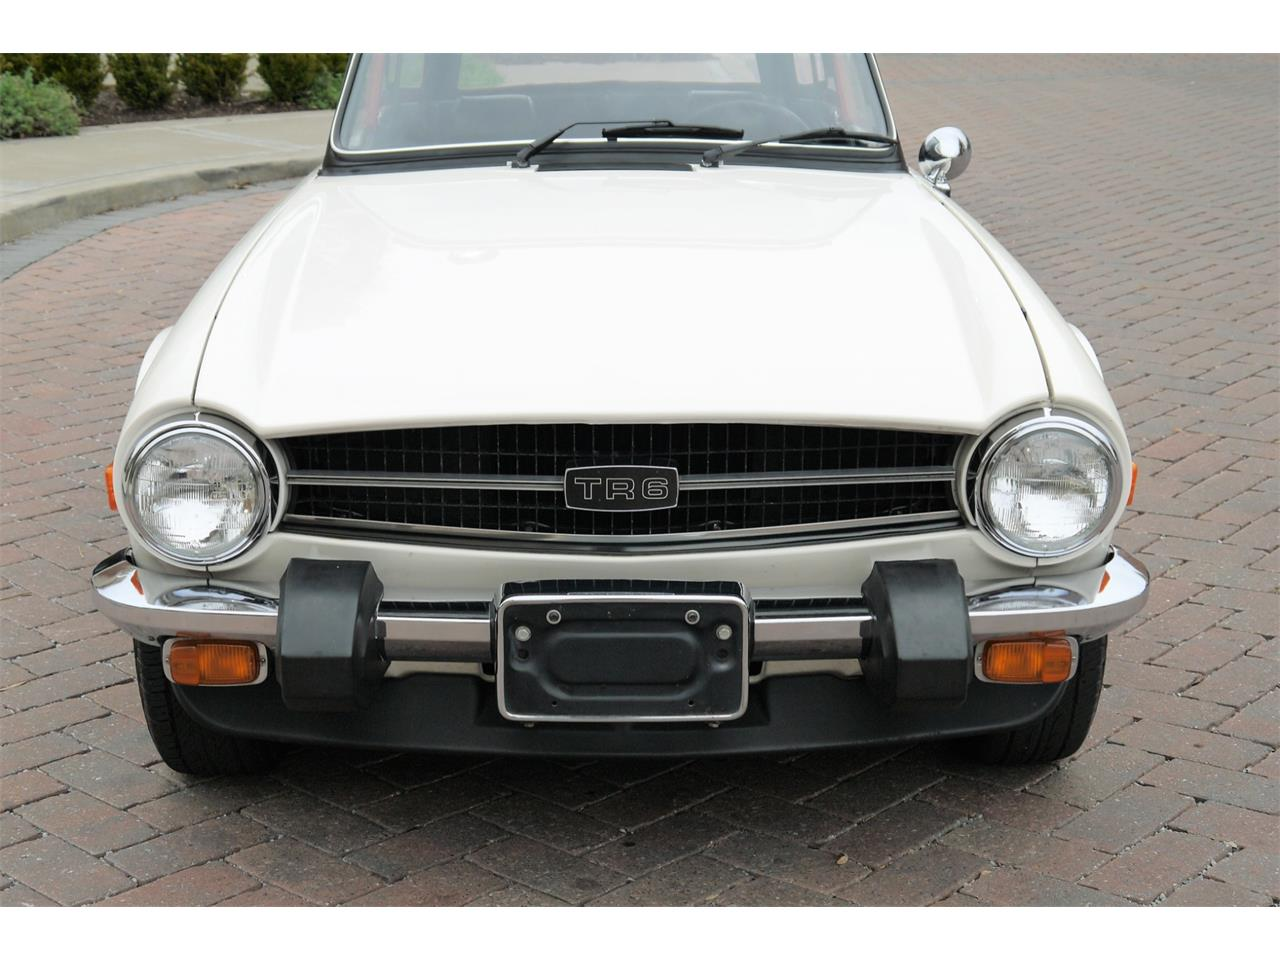 1976 Triumph TR6 for sale in Brentwood, TN – photo 39